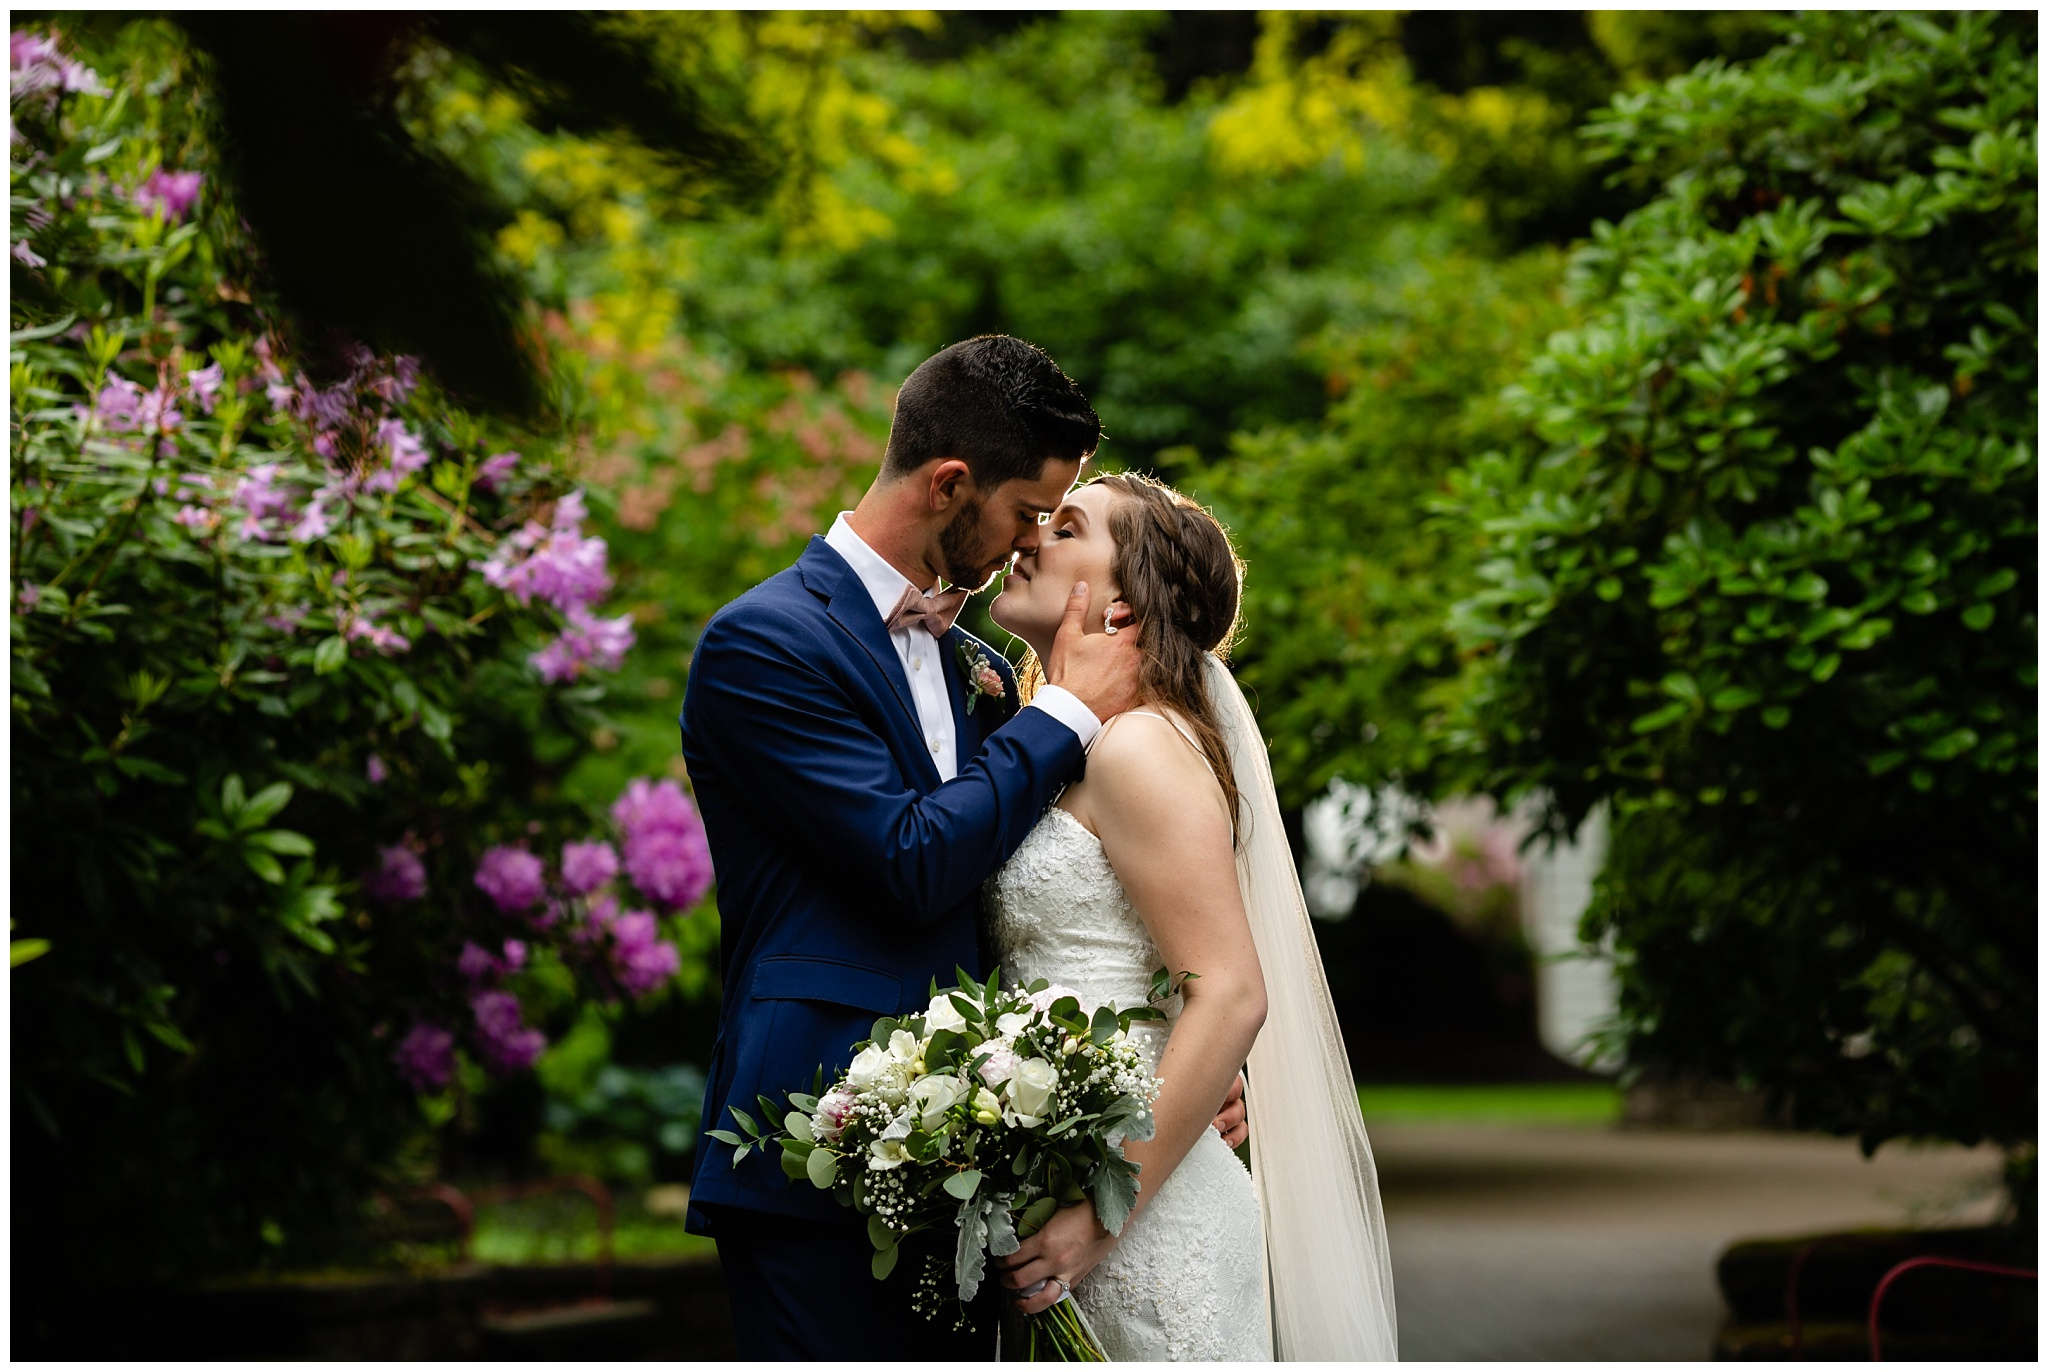 Cloverdale Canadian Reformed Church Wedding Sendall Garden Bride Groom Portraits Christian Couples Best Photographer in Langley Surrey British Columbia_0048.jpg